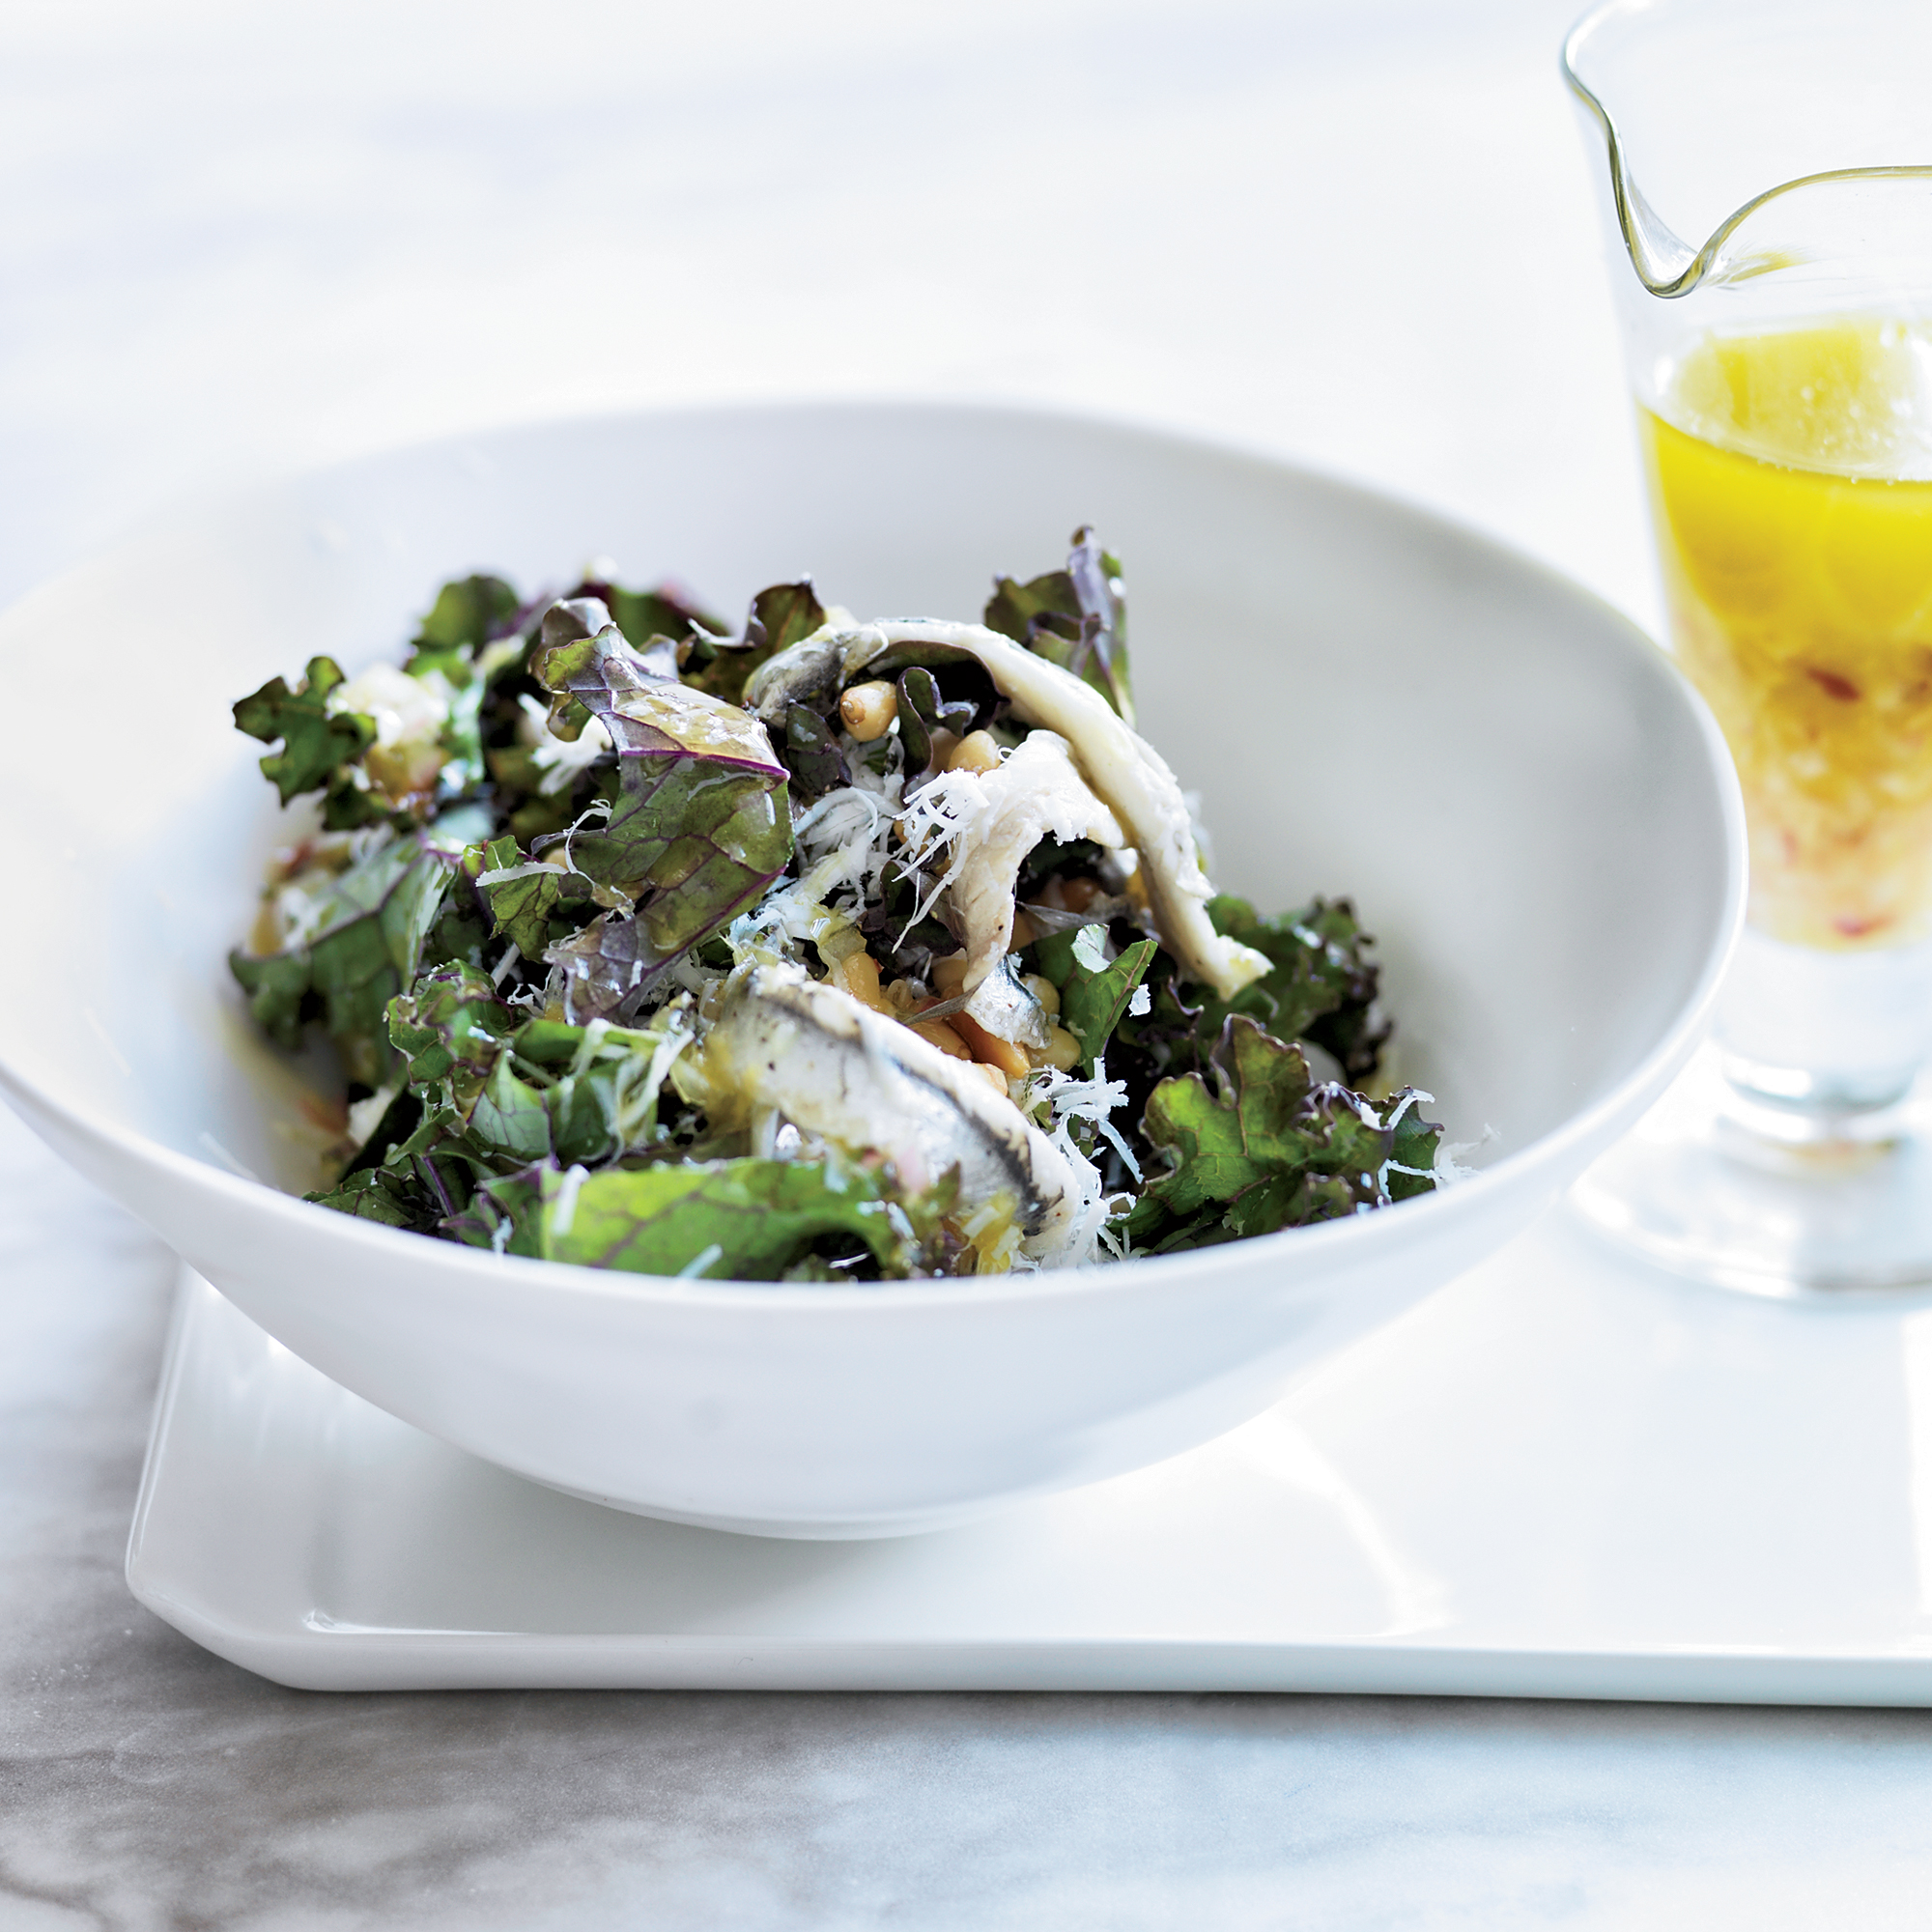 Kale Salad with Ricotta, Pine Nuts & Anchovies